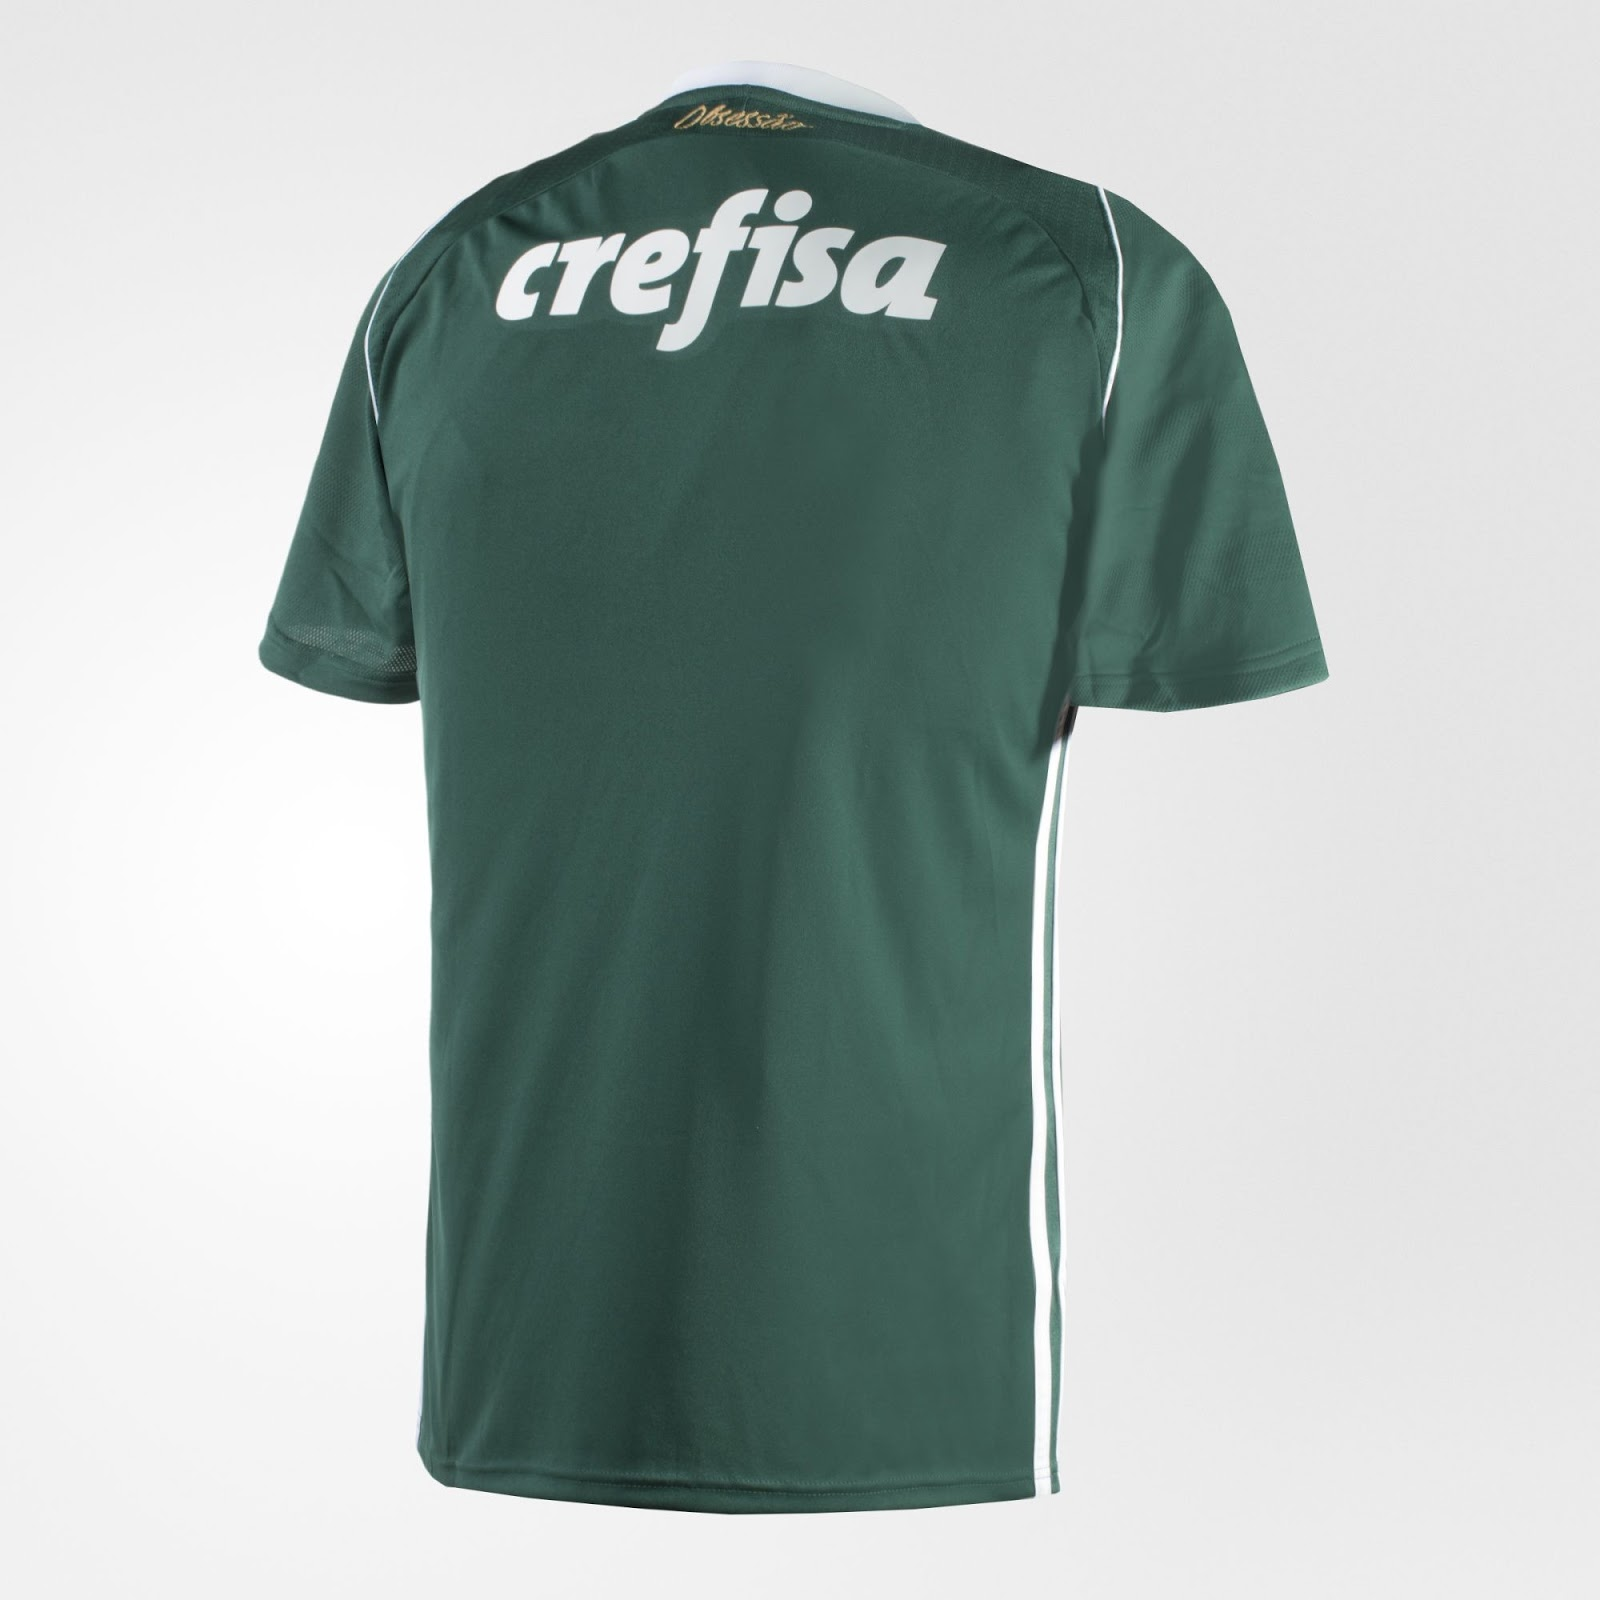 limited-edition-adidas-palmeiras-2017-obsessao-kit-back